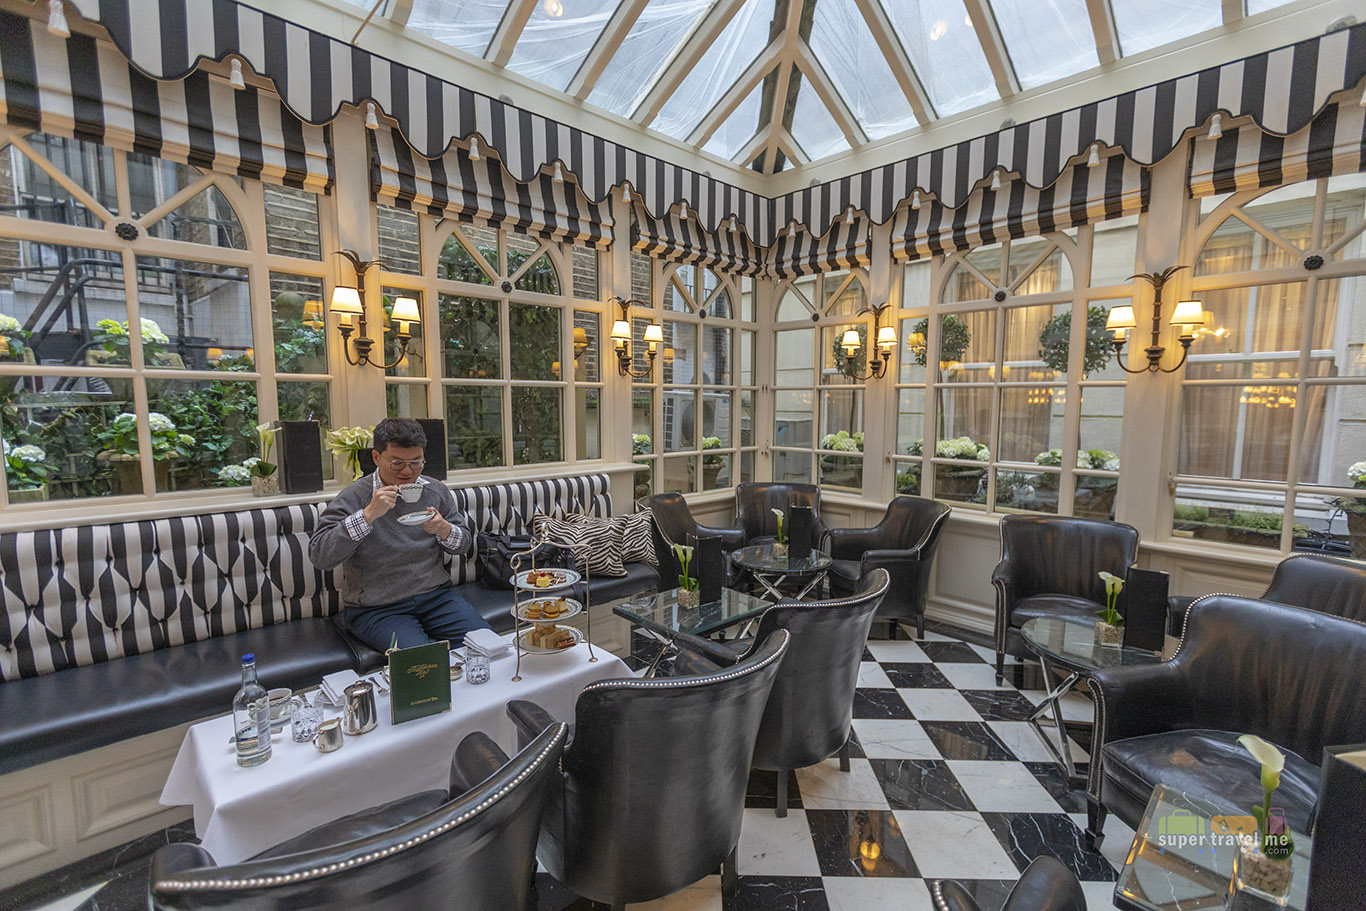 Have afternoon tea at The Milestone Hotel in London